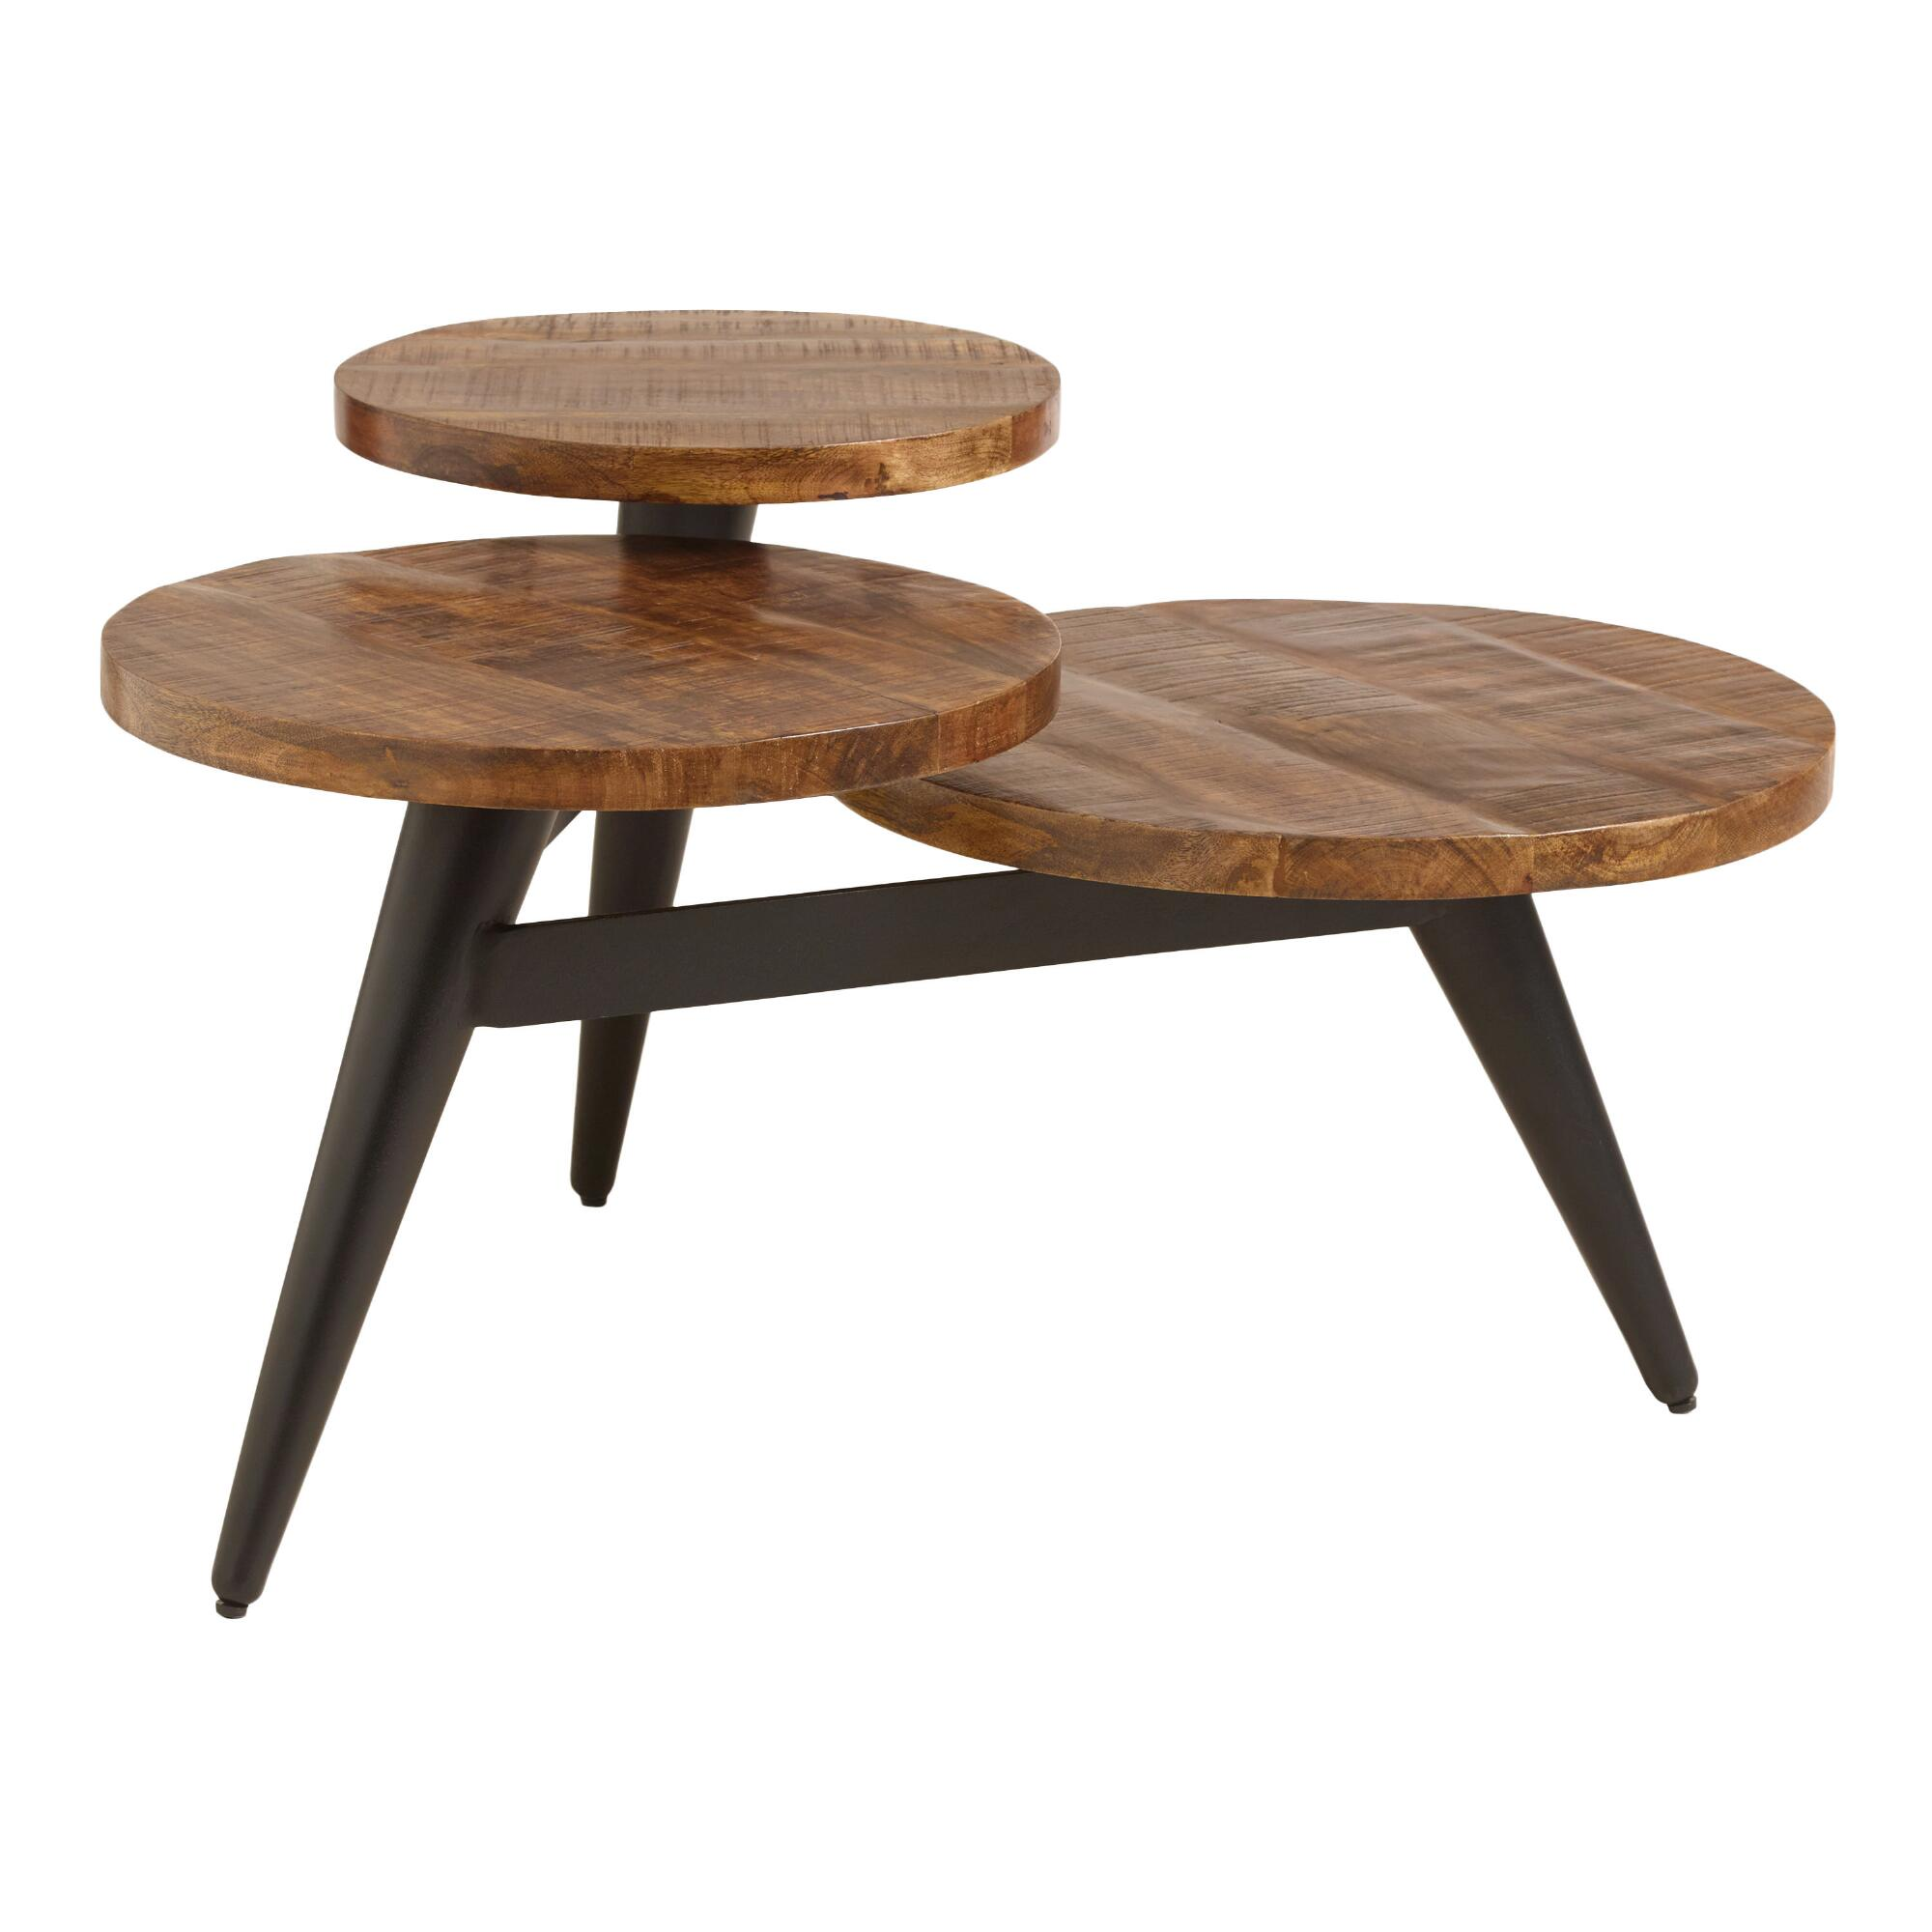 Wood and metal multi level coffee table world market for Wooden coffee tables images